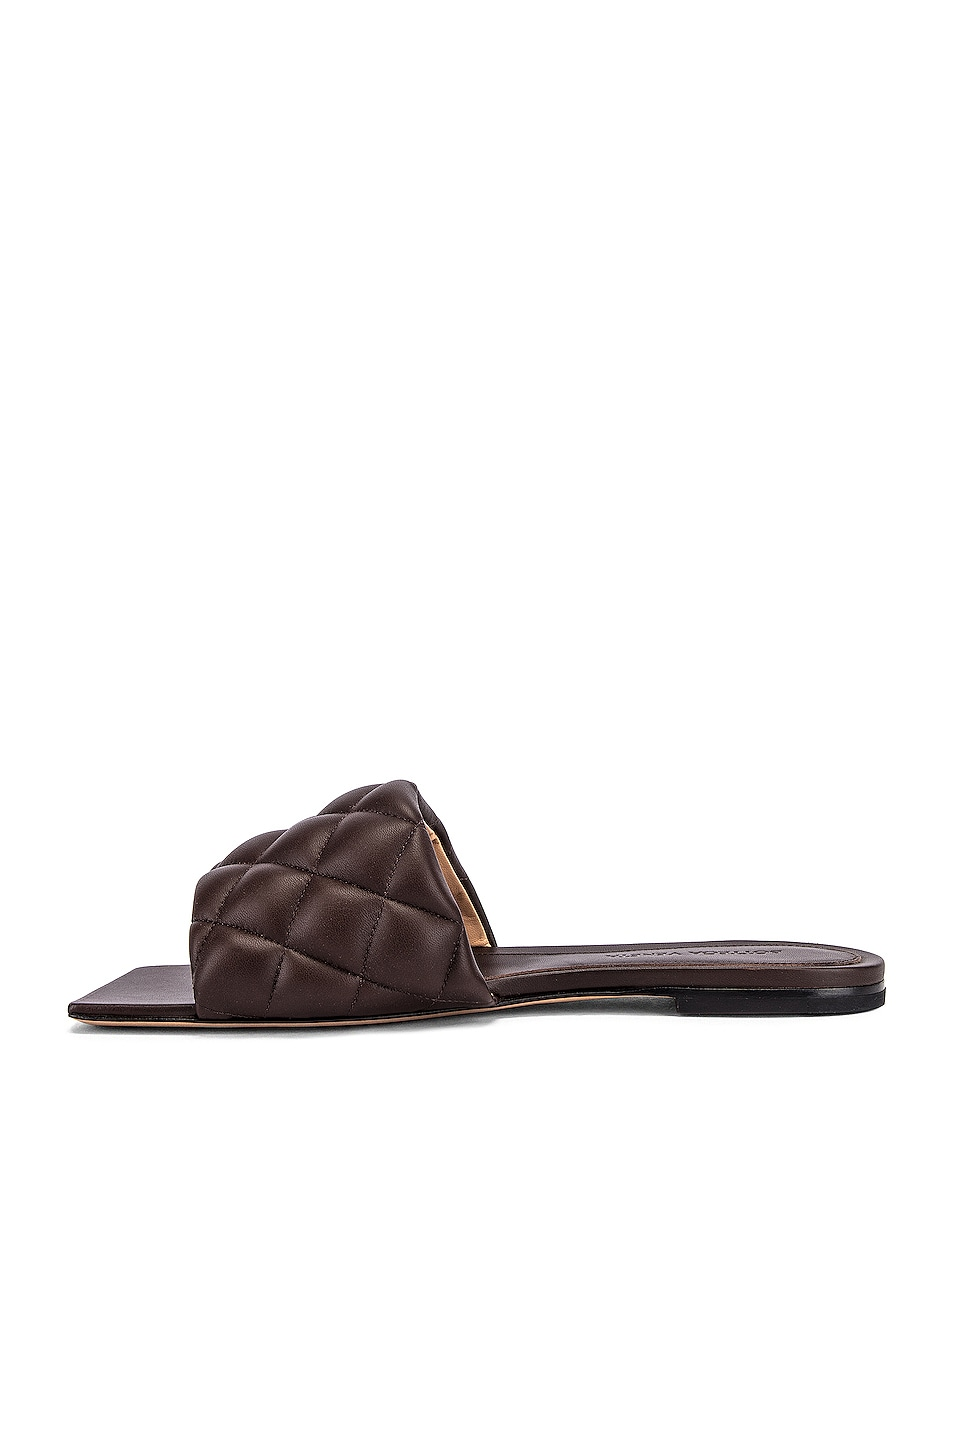 Image 5 of Bottega Veneta Leather Quilted Slides in Chocolate